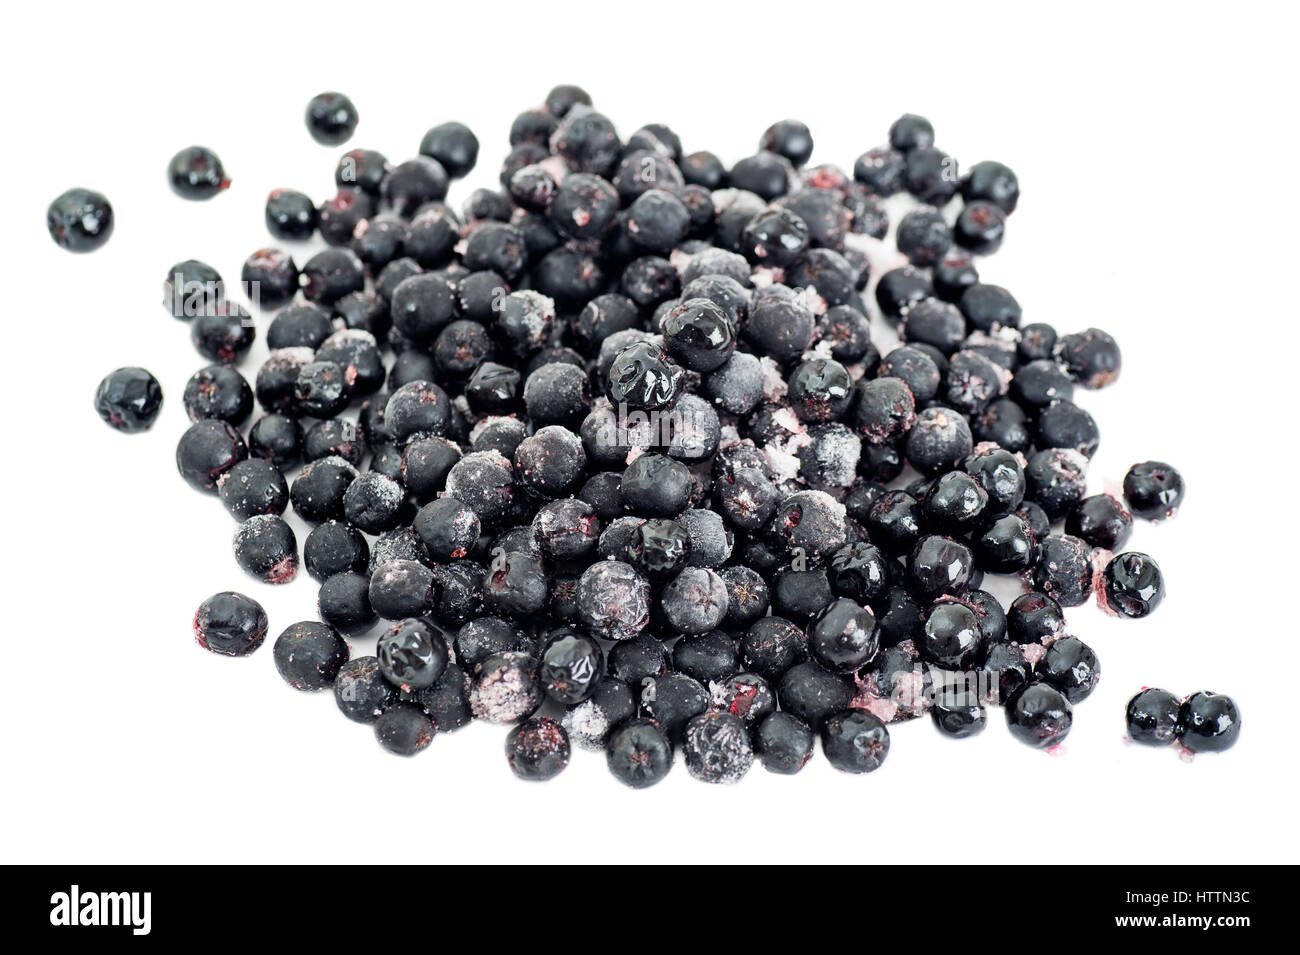 Organic frozen aronia berries on white background - Stock Image